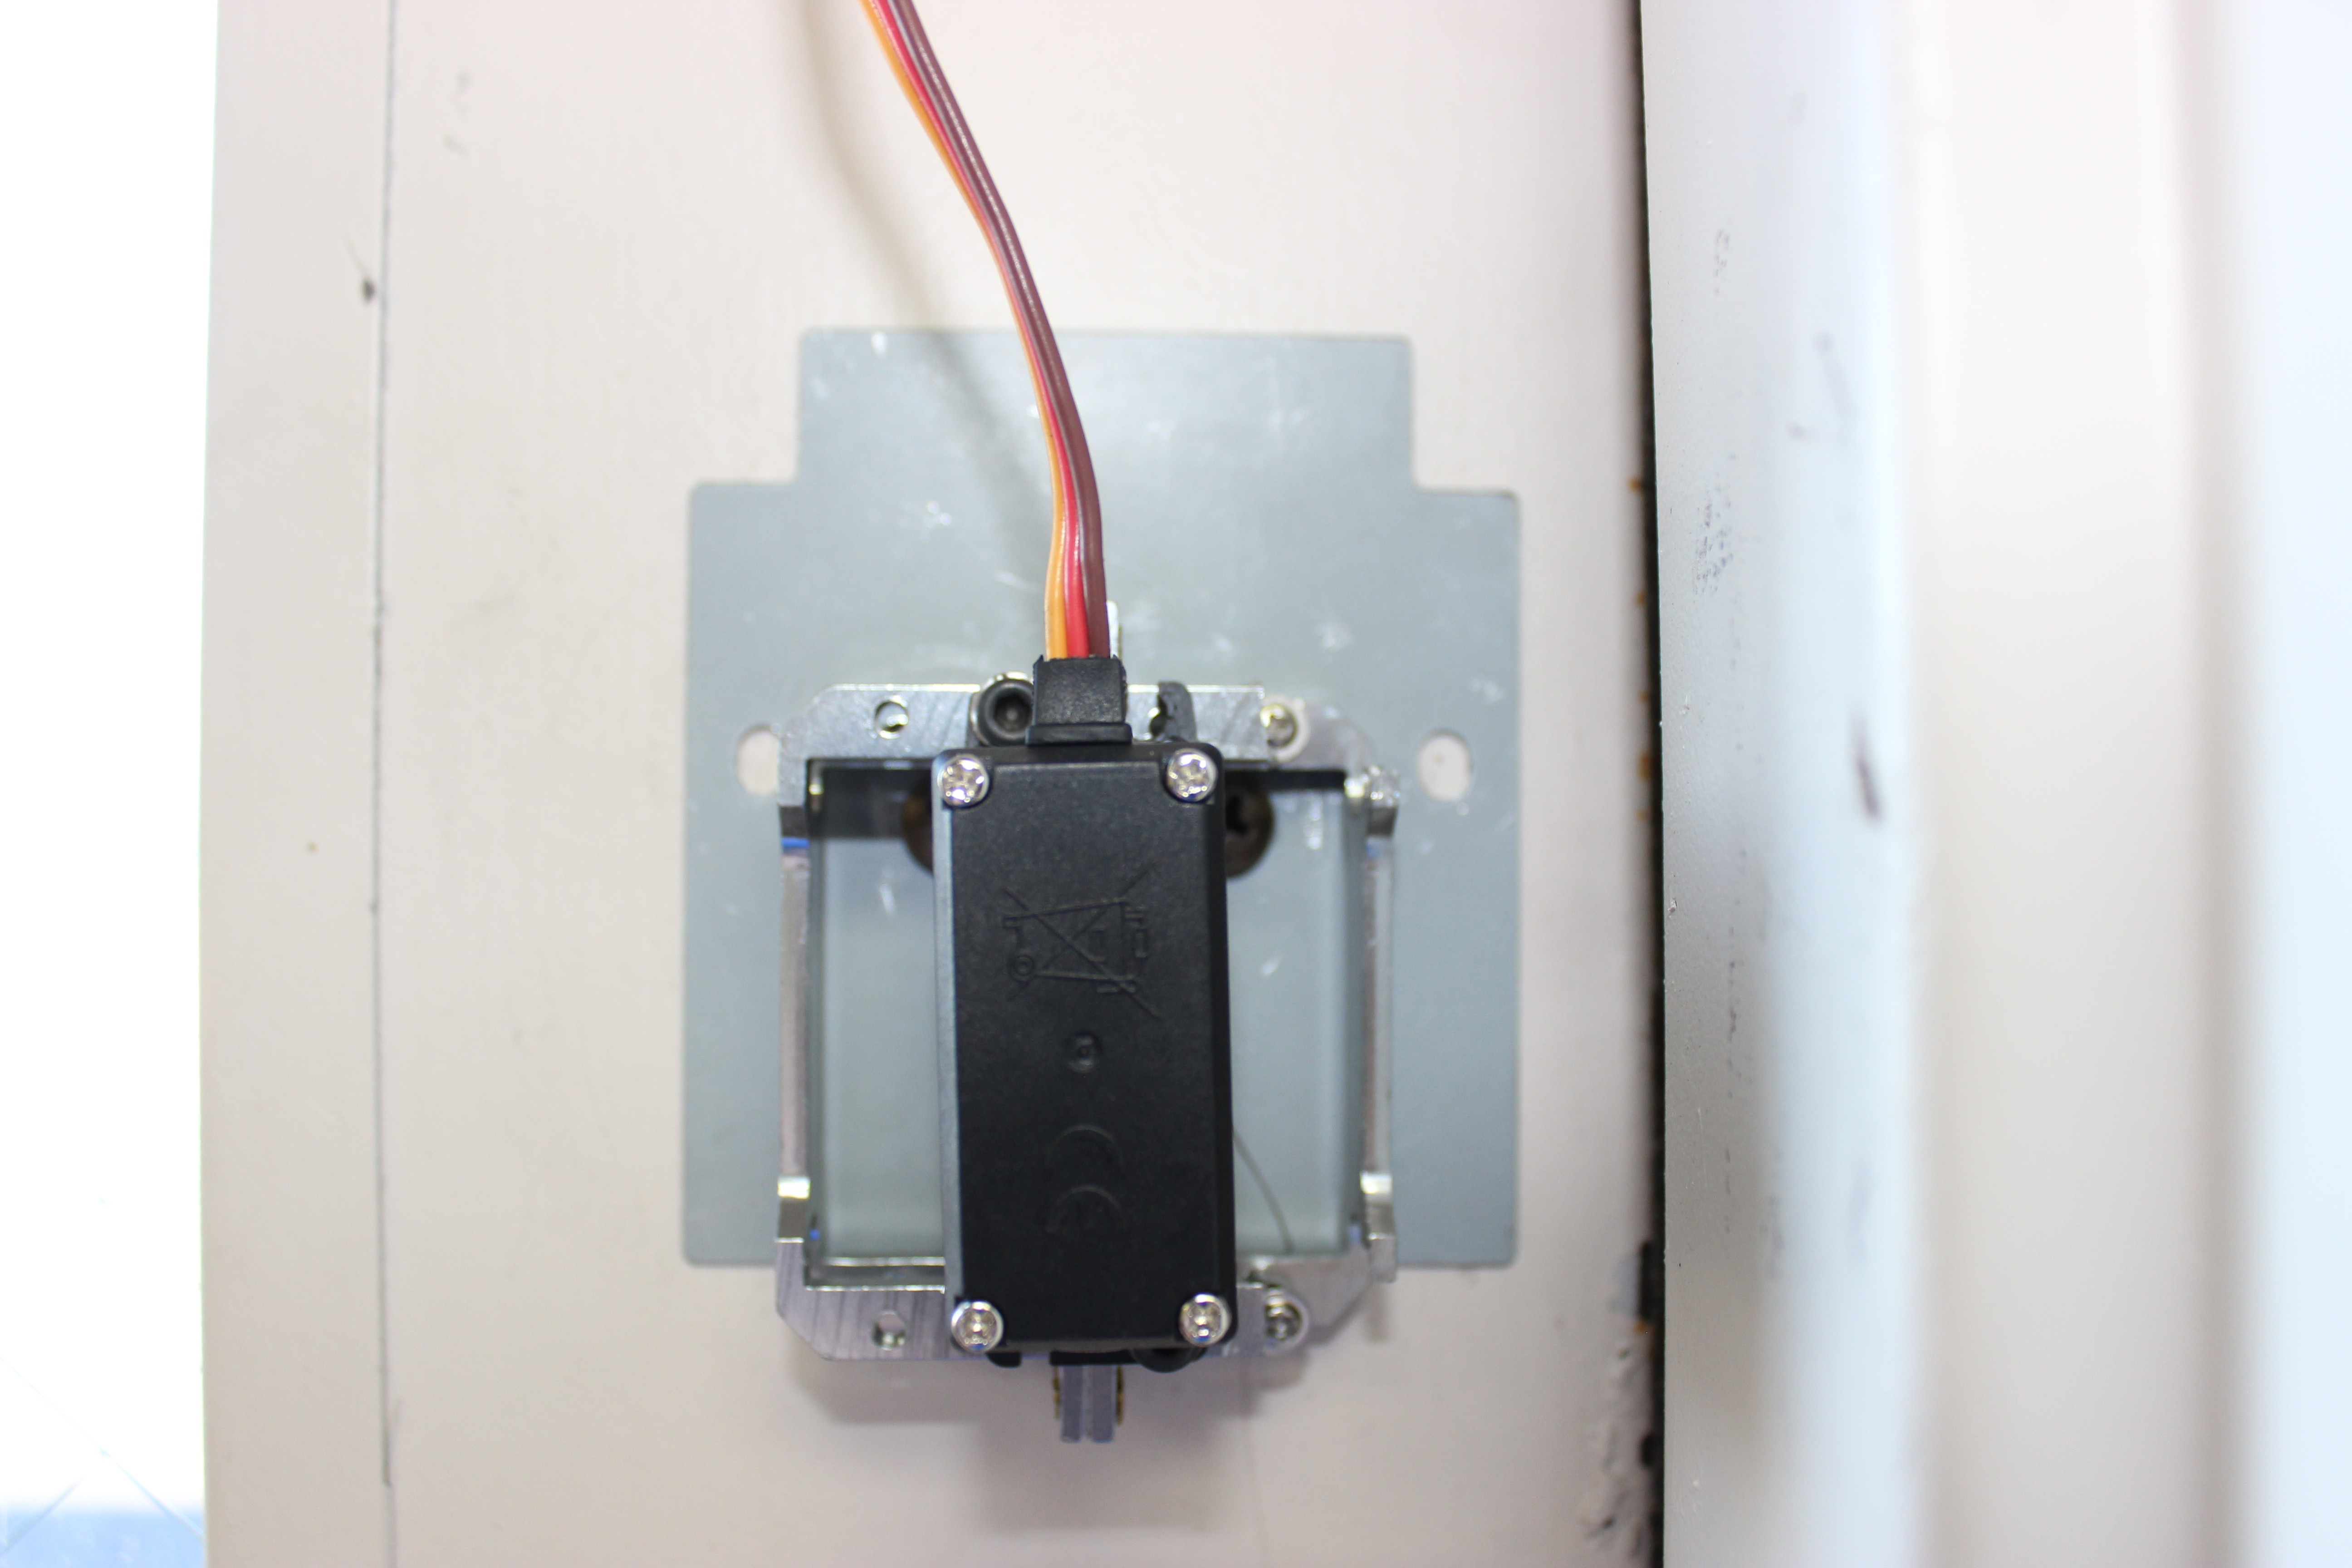 Diy Electronic Deadbolt With A Servo Motor Simply Smarter Buy Electronics And Arduino Kit Get It Shipped To Your Doorstep The Osepp Compatible Uno R3 Plus Breadboard Control Wirelessly